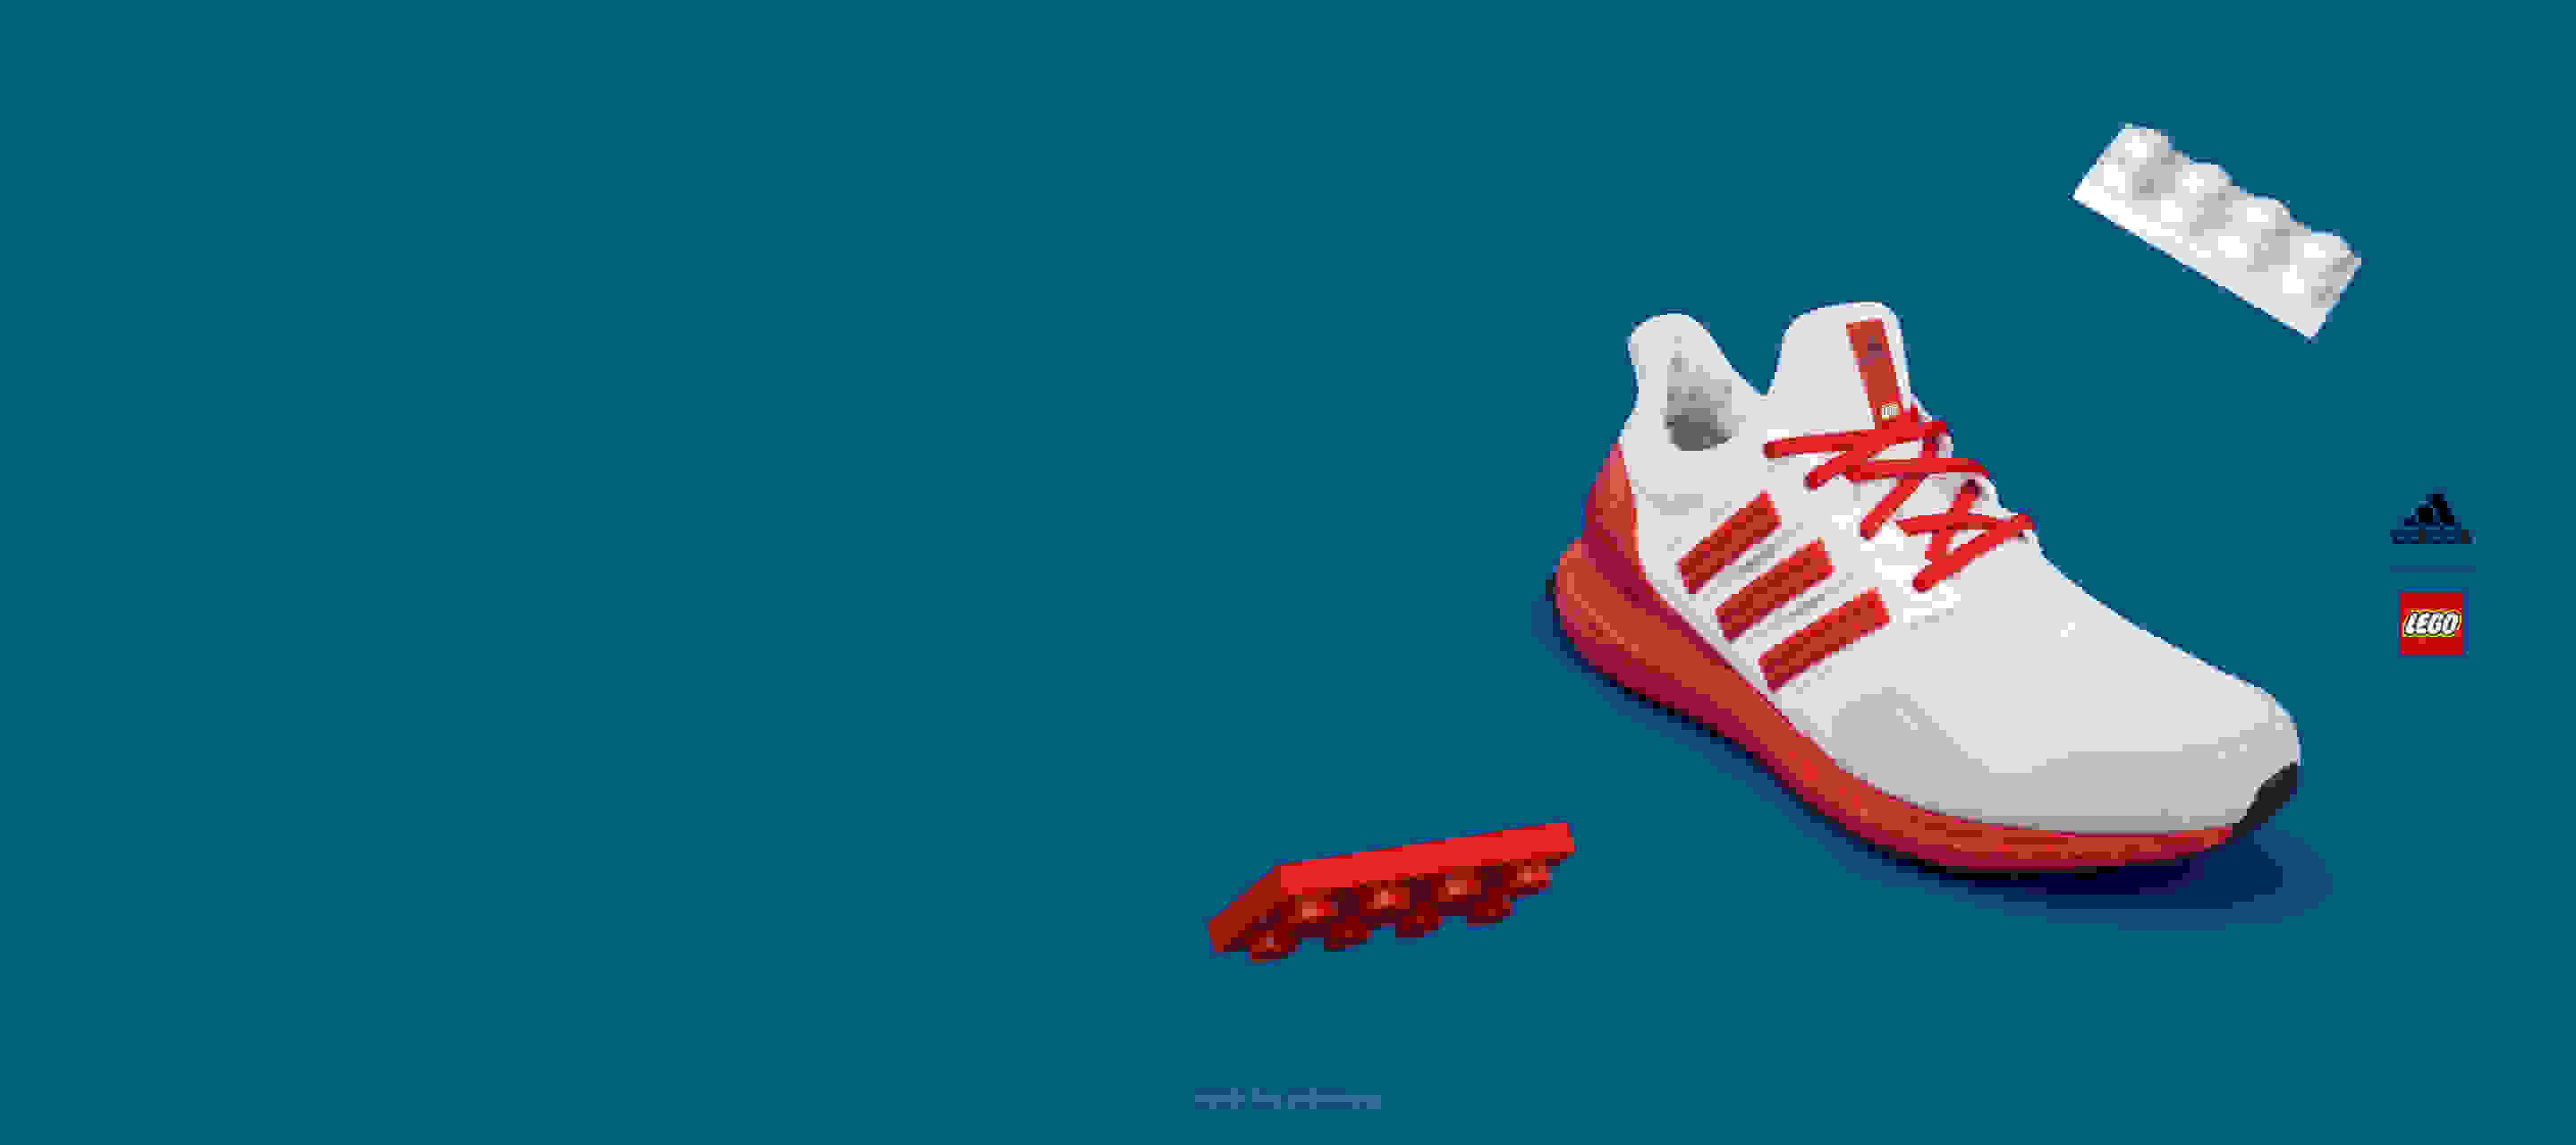 Red color shoe on blue background